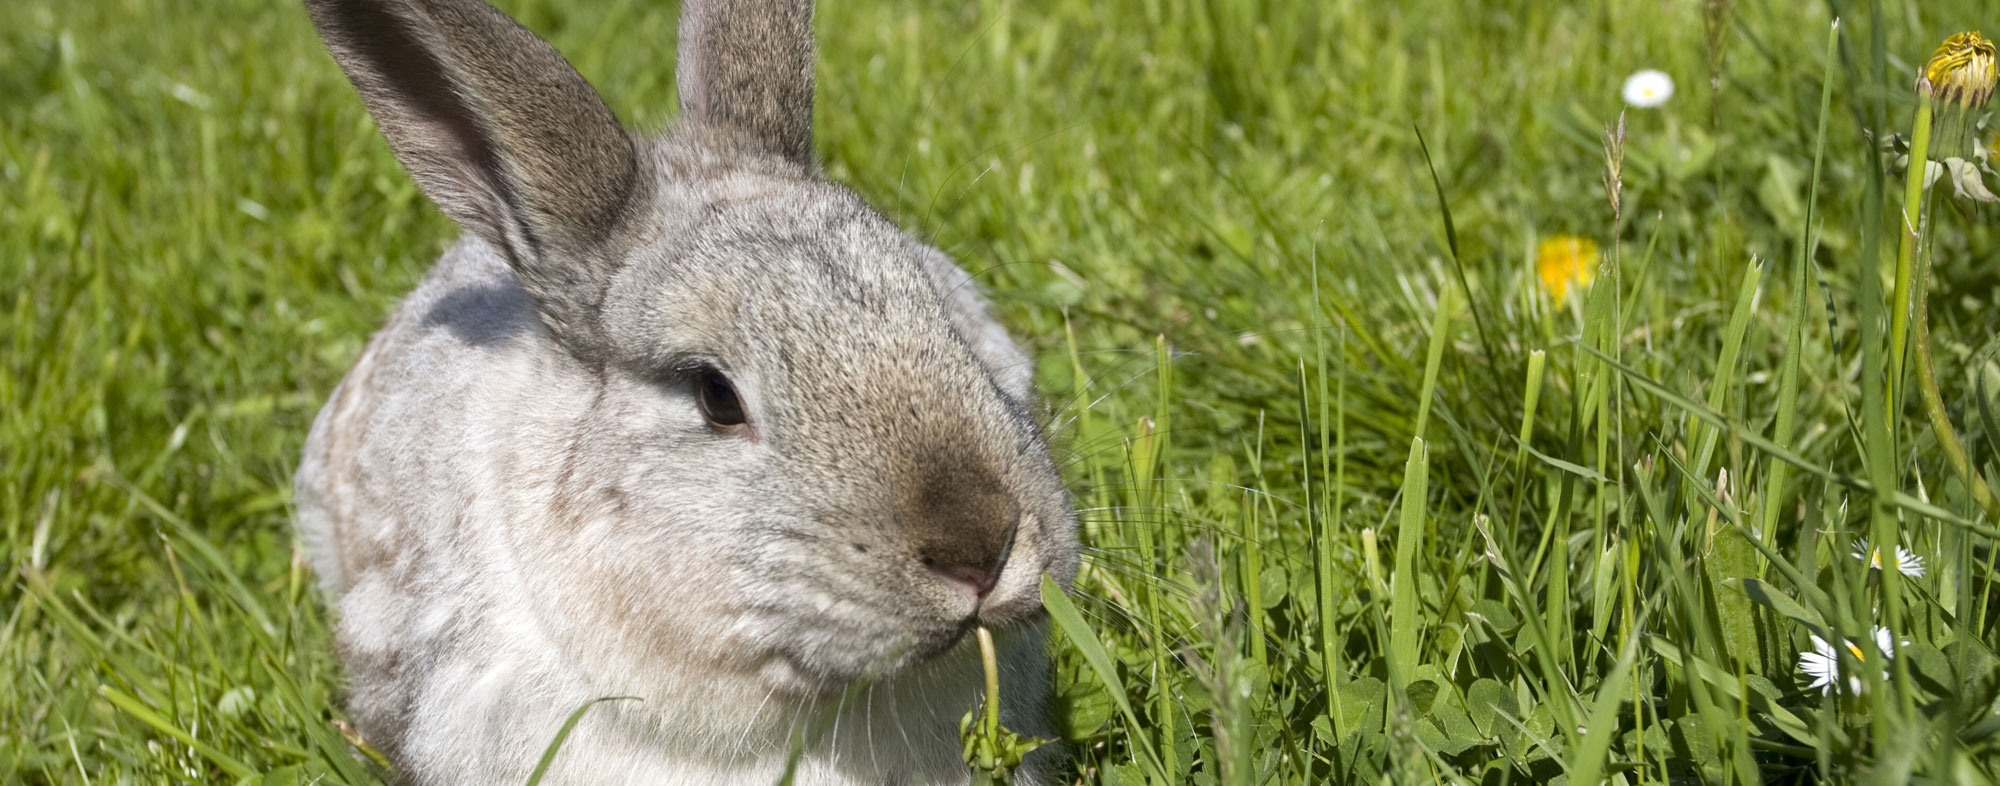 A pet rabbit reclining outside in the grass, chewing on weeds